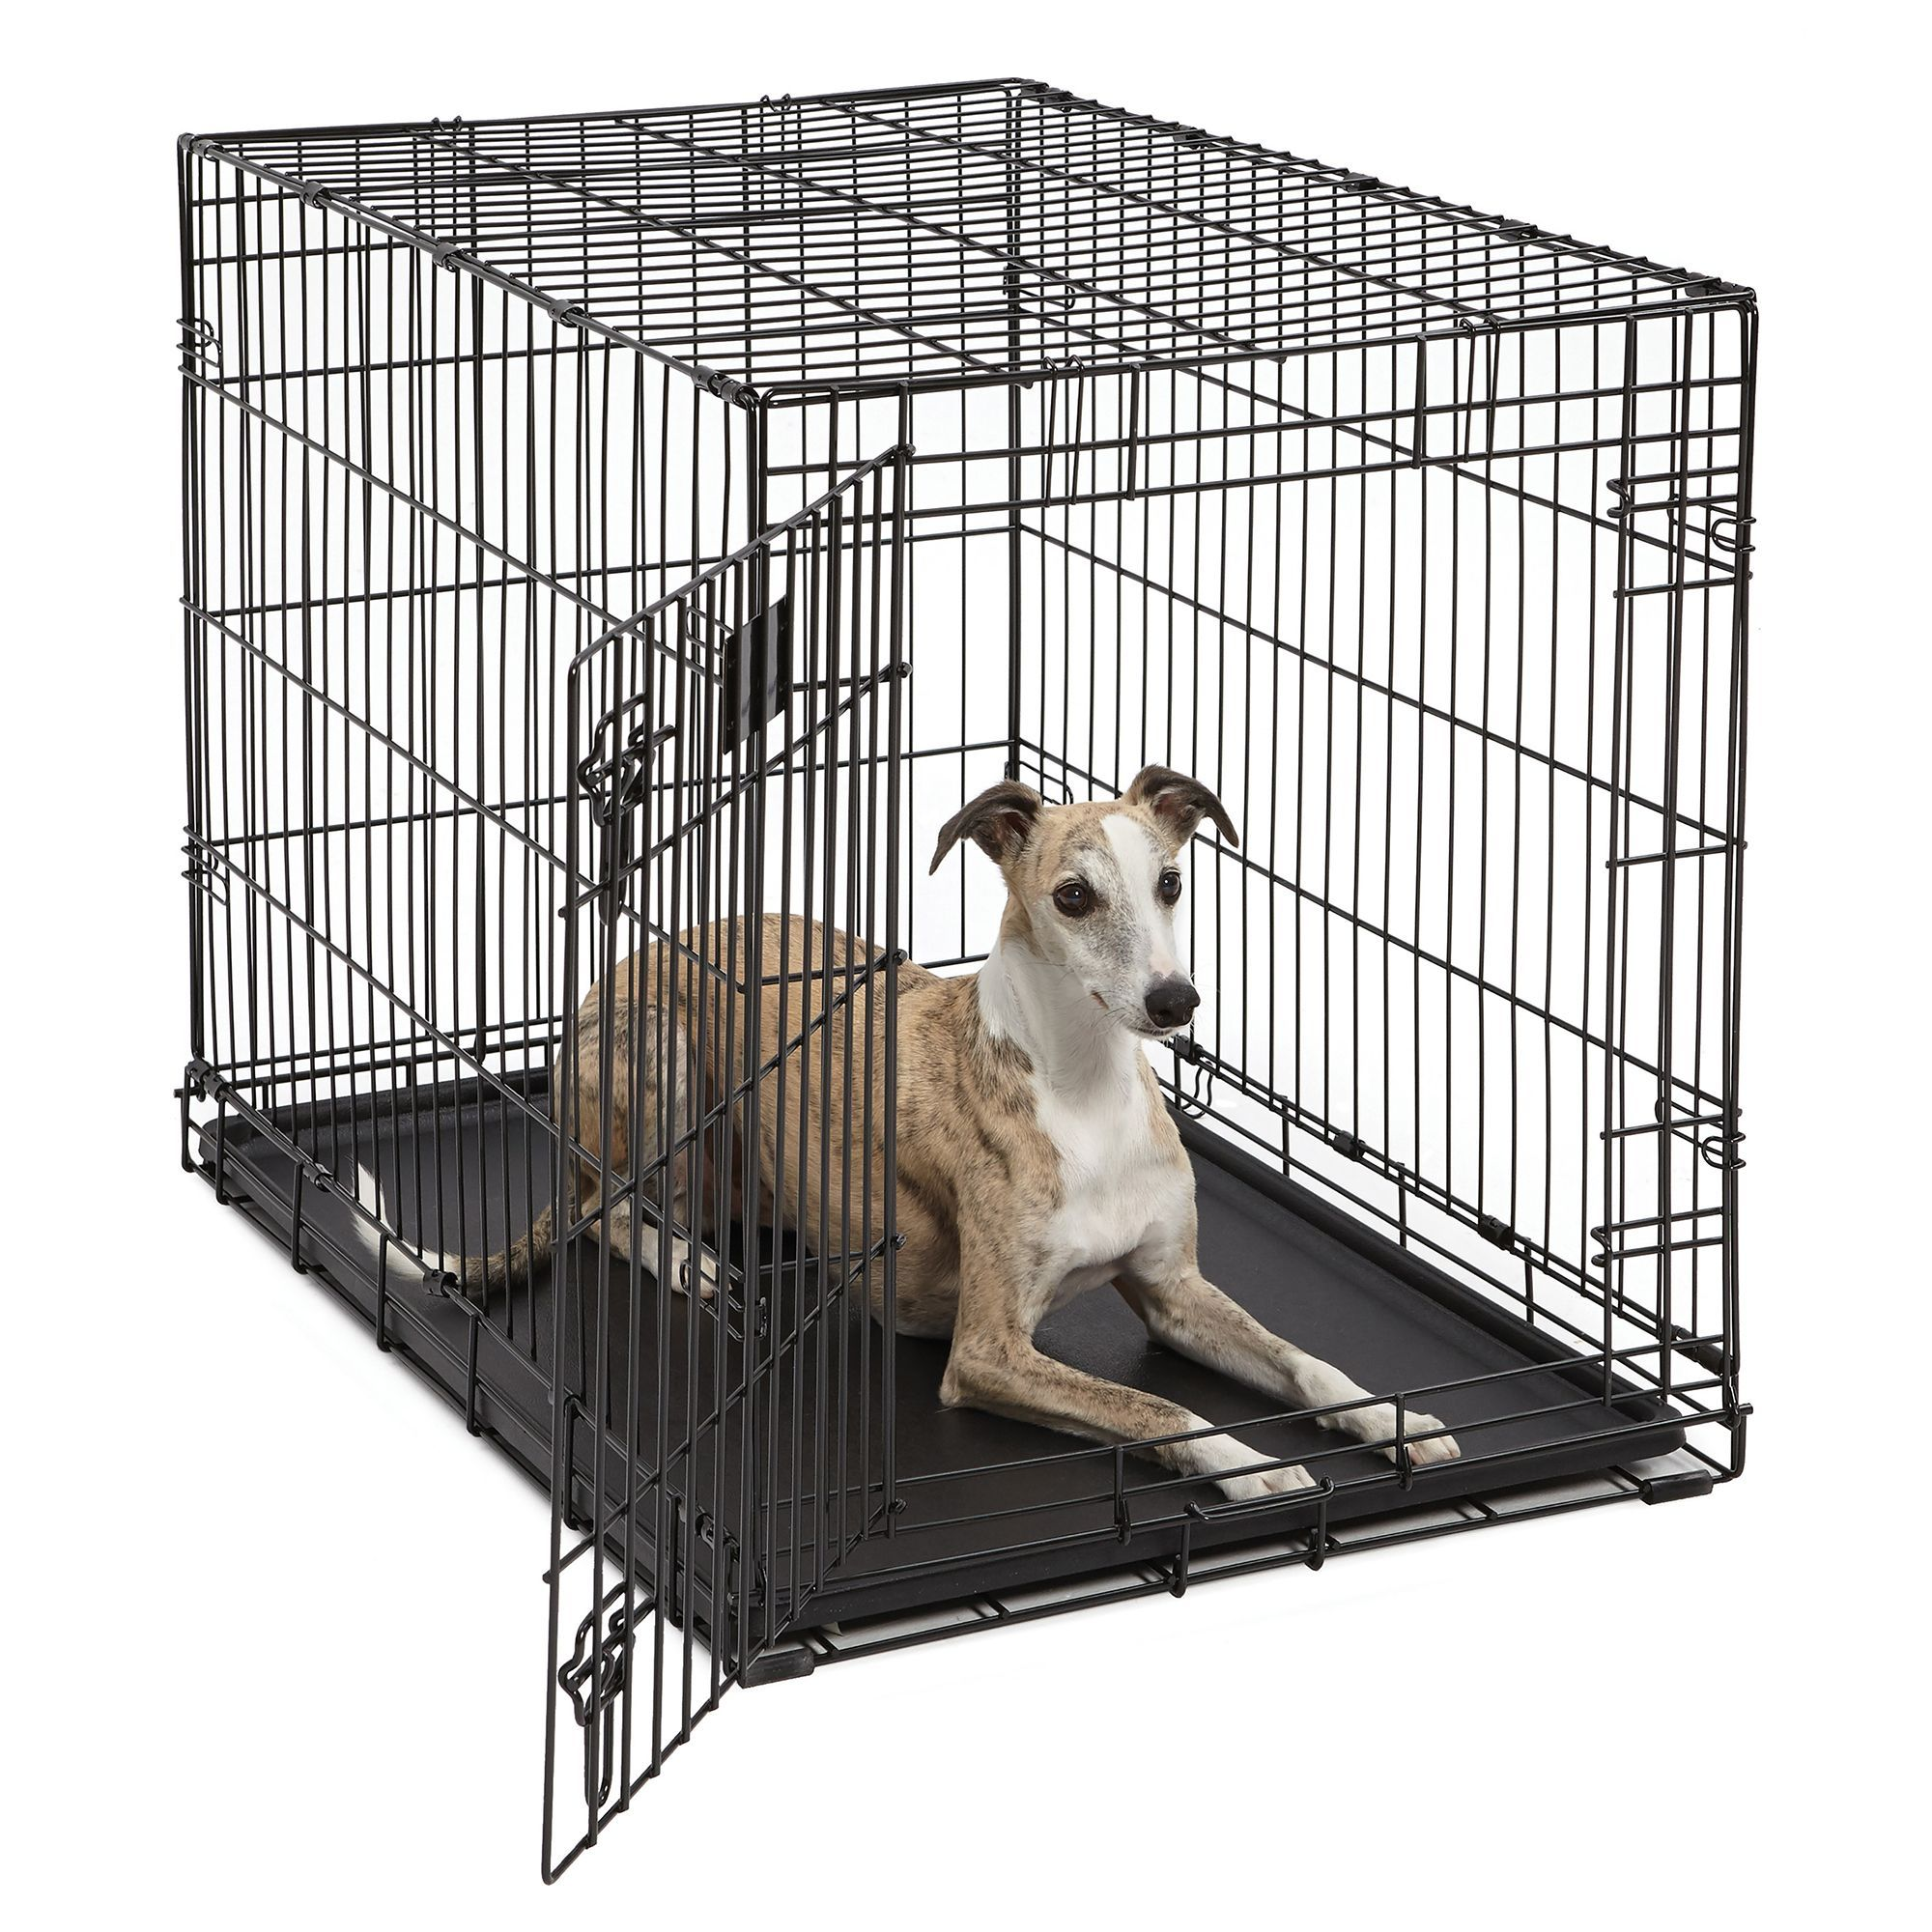 Midwest Life Stages Single Door Folding Dog Crate Size 36 L X 24 W X 27 H Black Dog Crate Folding Dog Crate Dogs